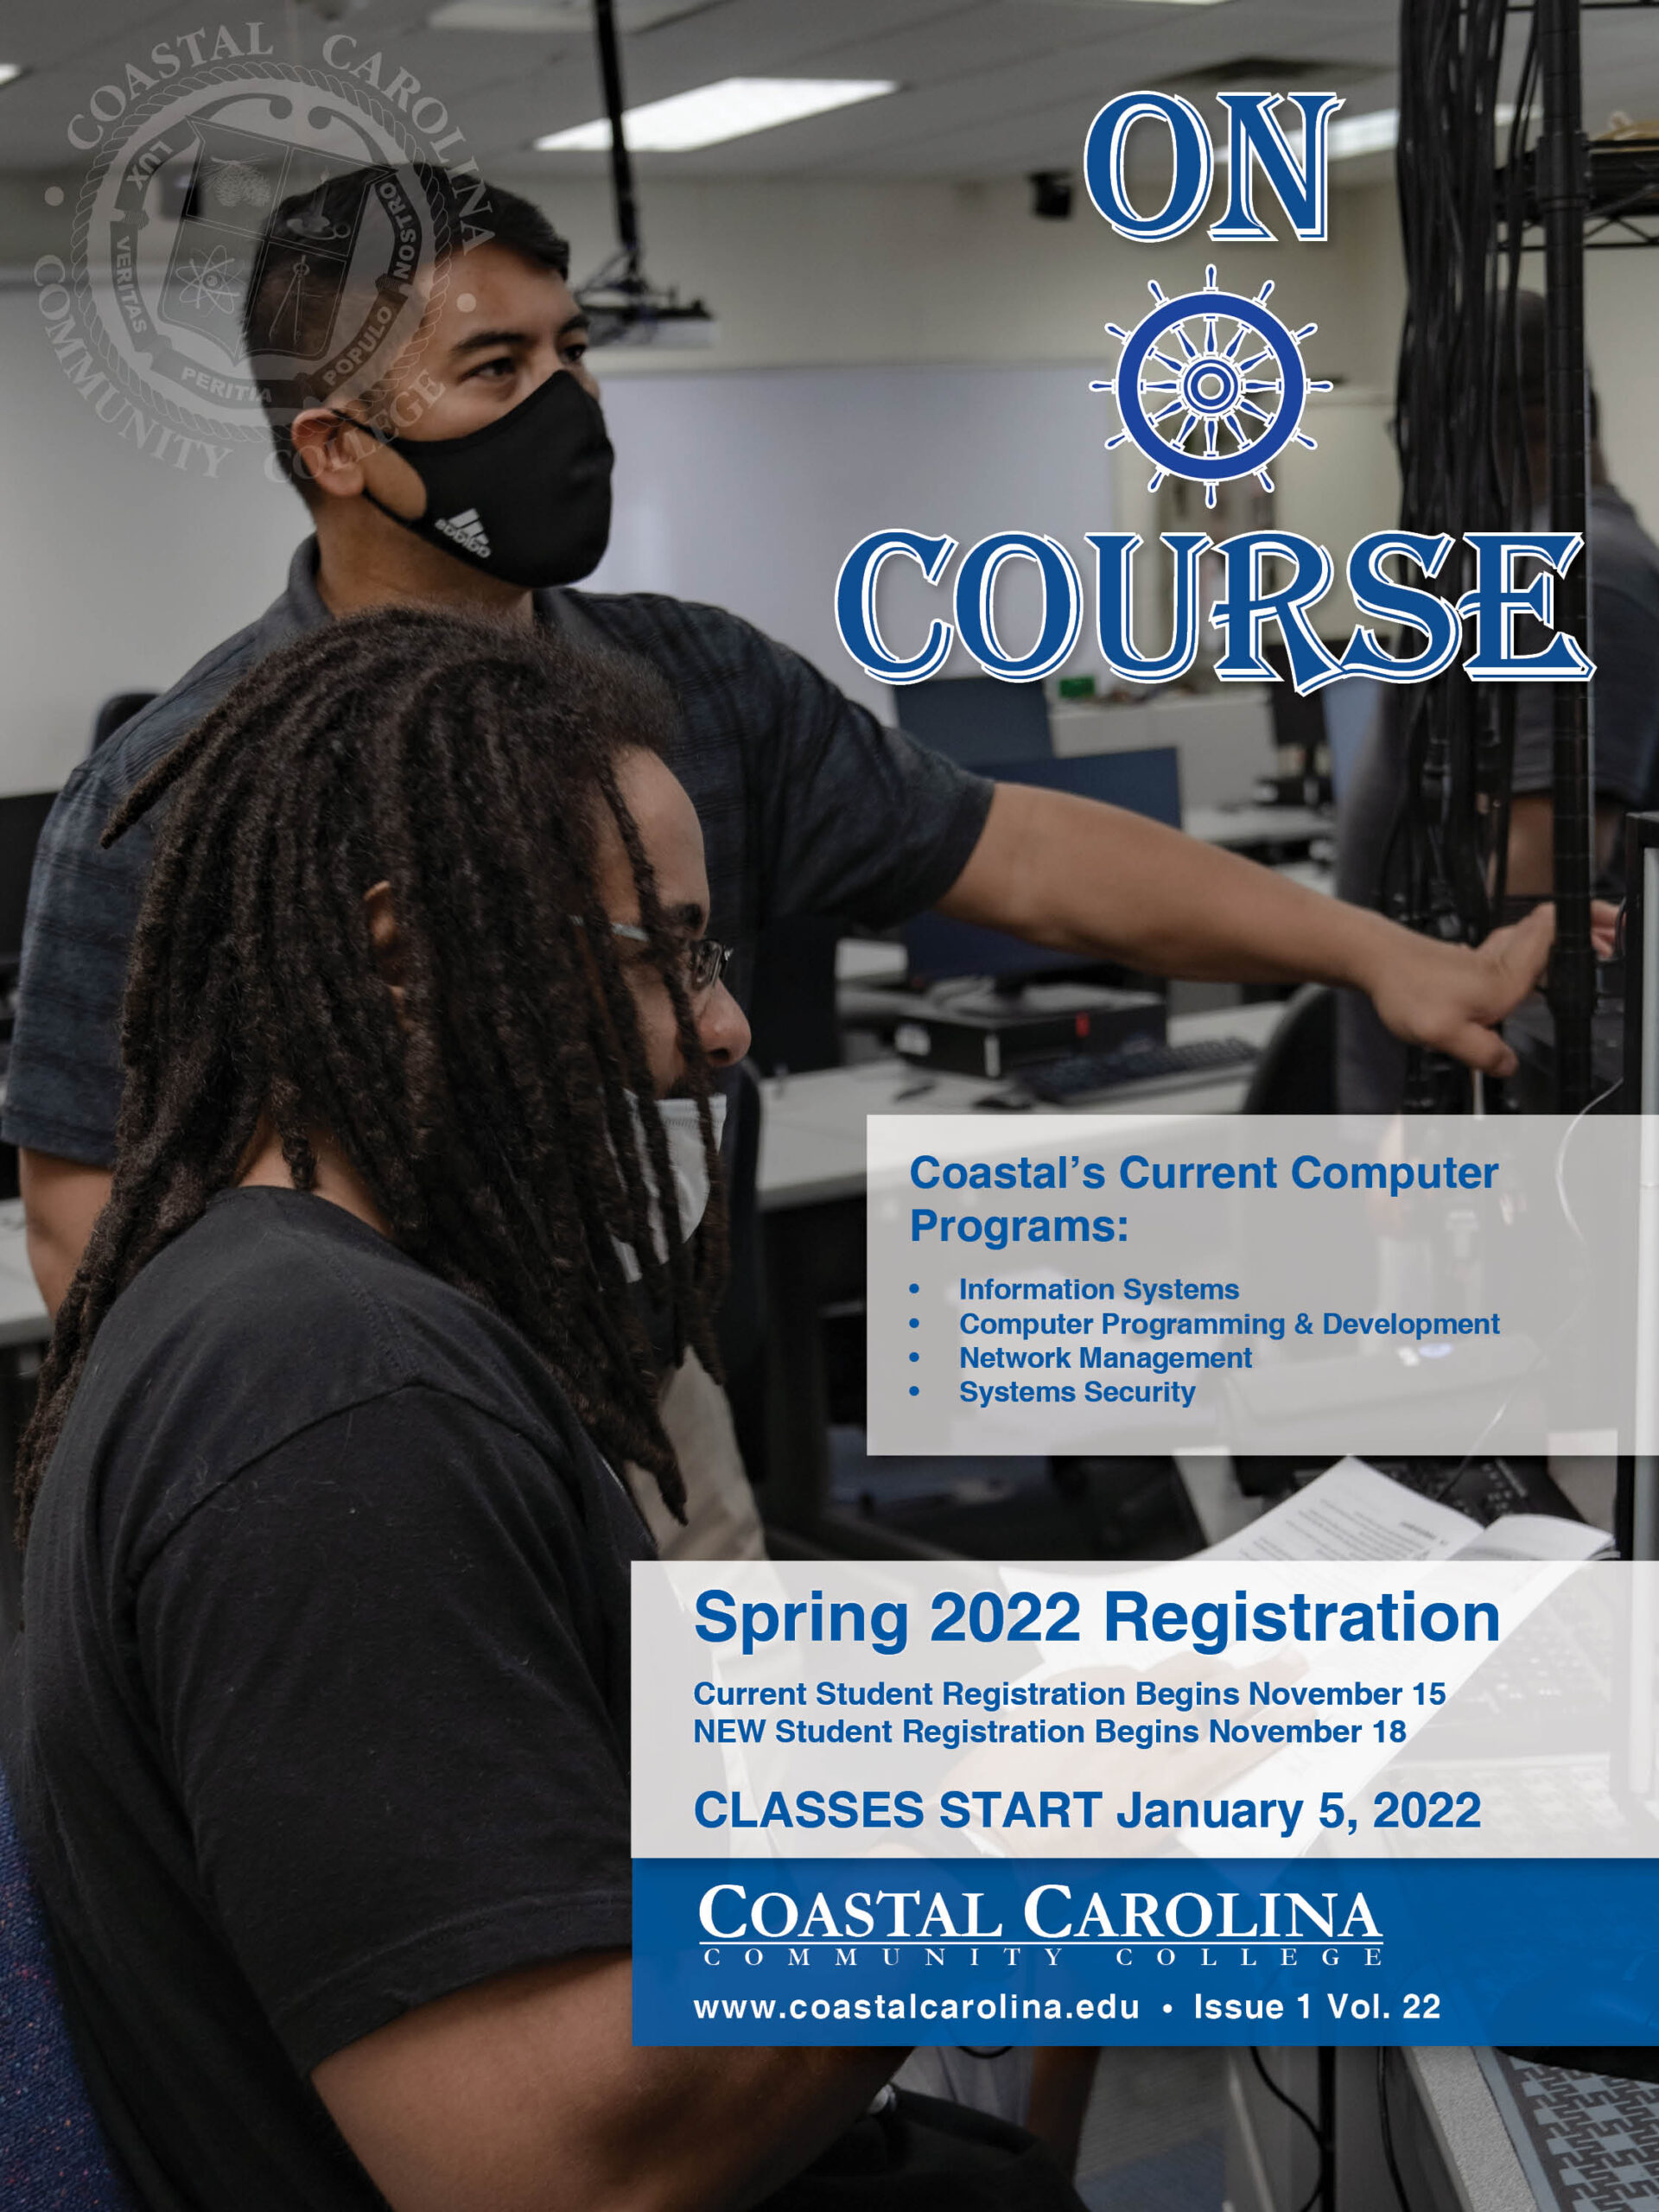 On Course Coastal's Current Computer Programs